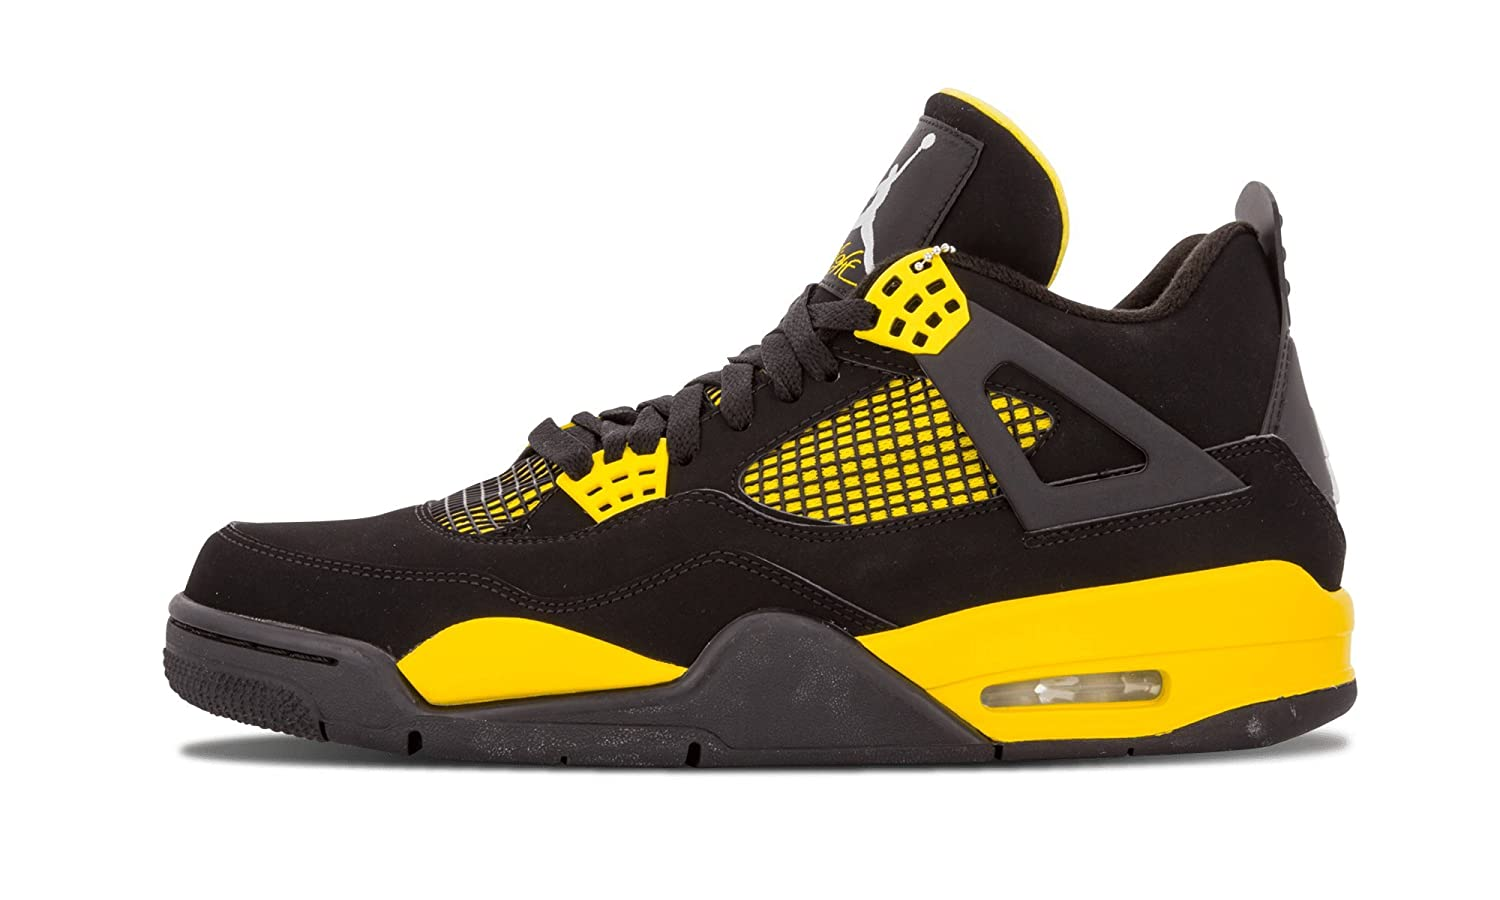 jordan 4 retro. amazon.com | nike mens air jordan 4 retro "|1500|900|?|False|3c39e7db6122886041e1a427a9fa95b2|False|UNLIKELY|0.303892582654953